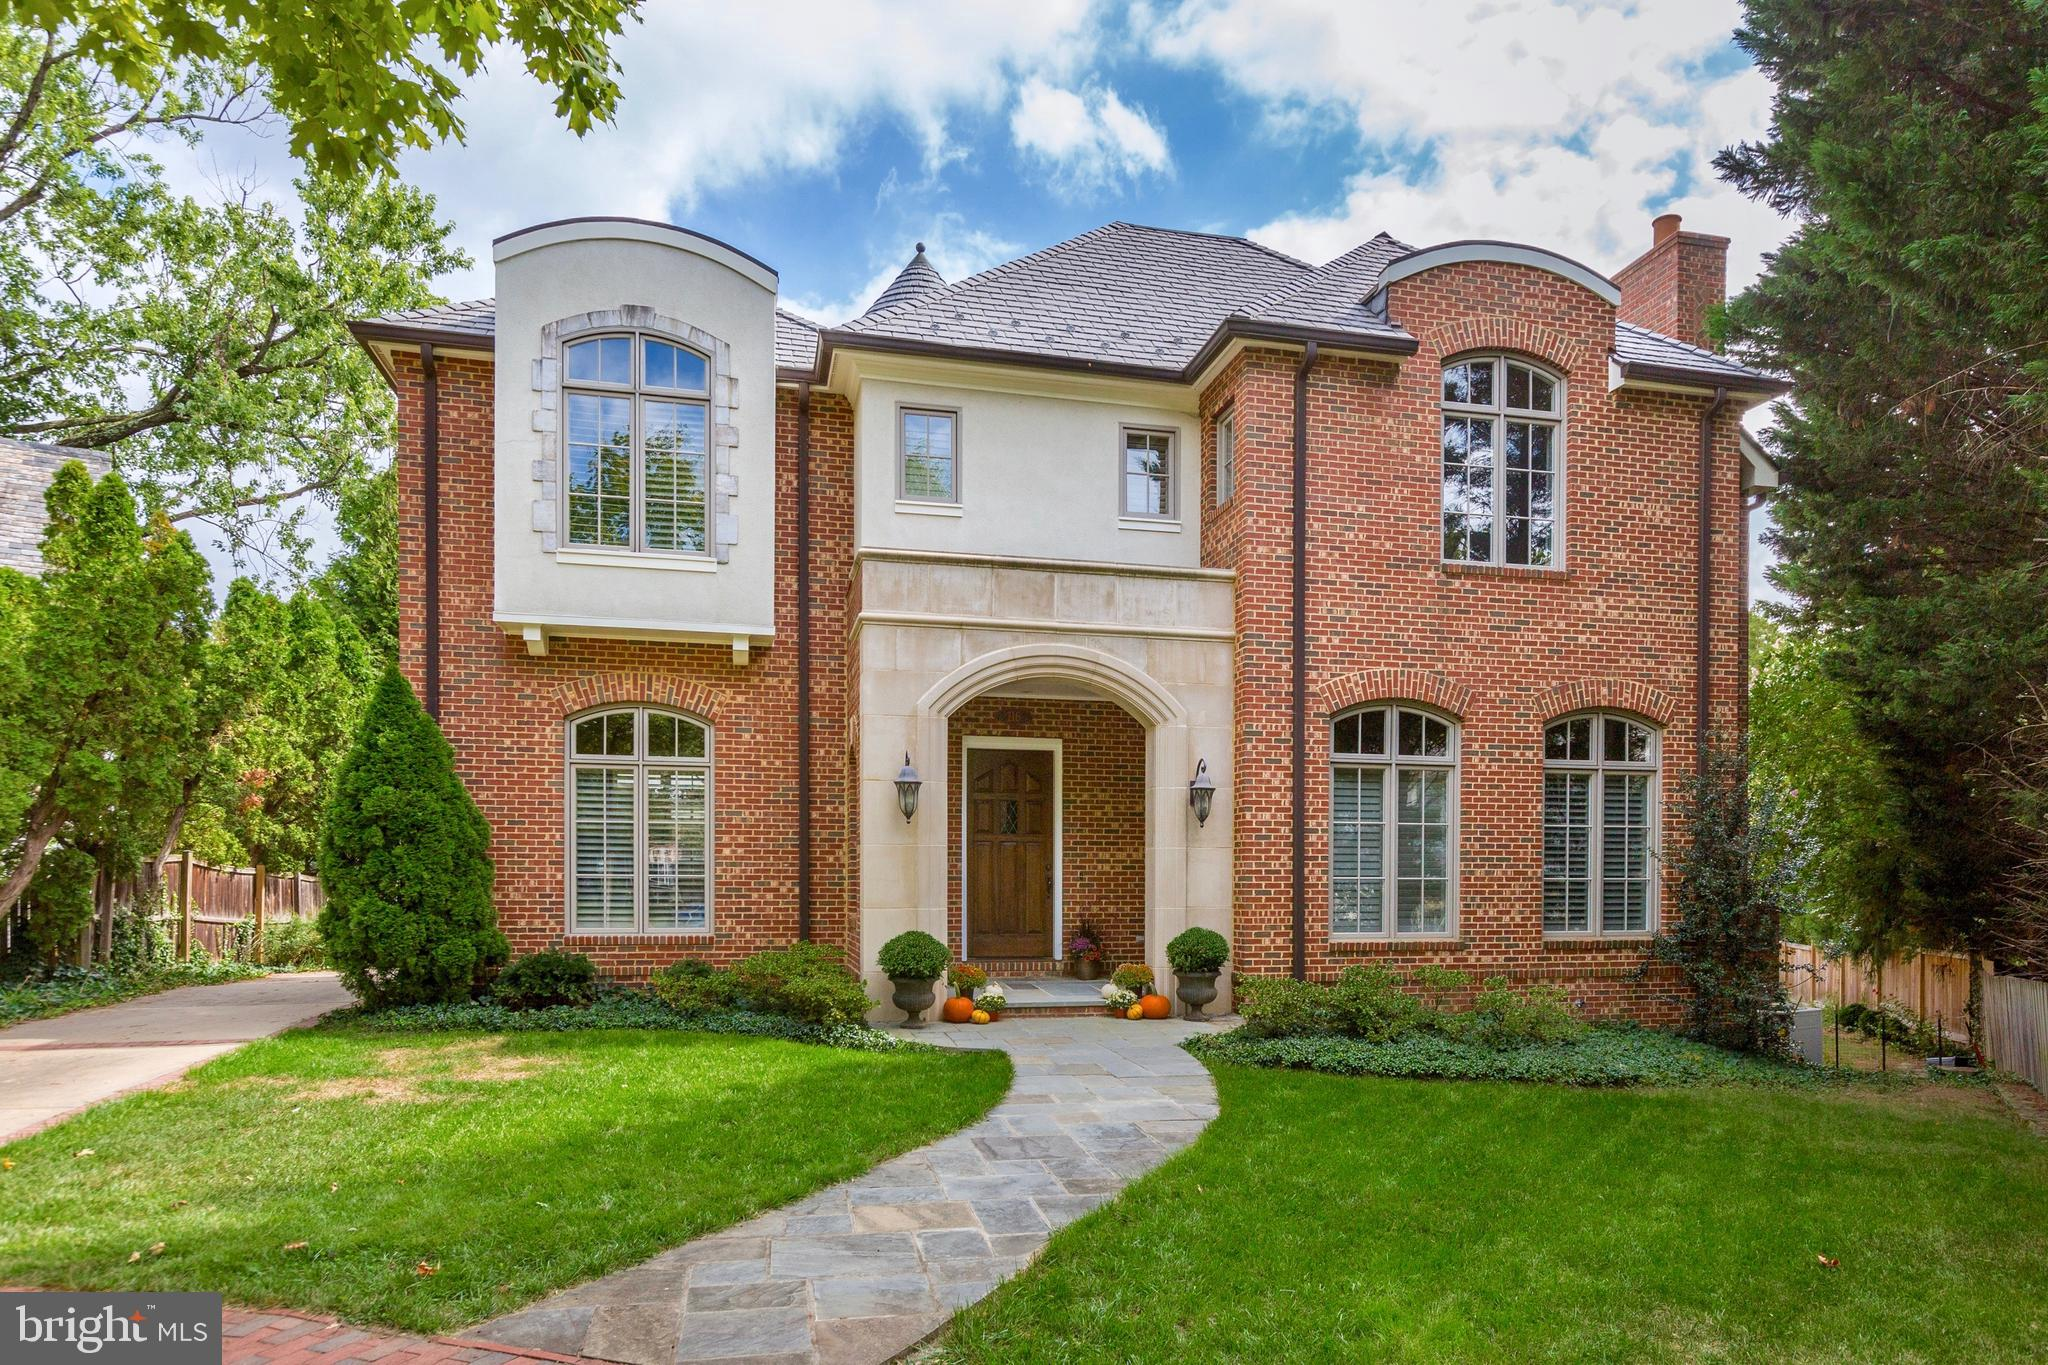 116 E MELROSE STREET, CHEVY CHASE, MD 20815